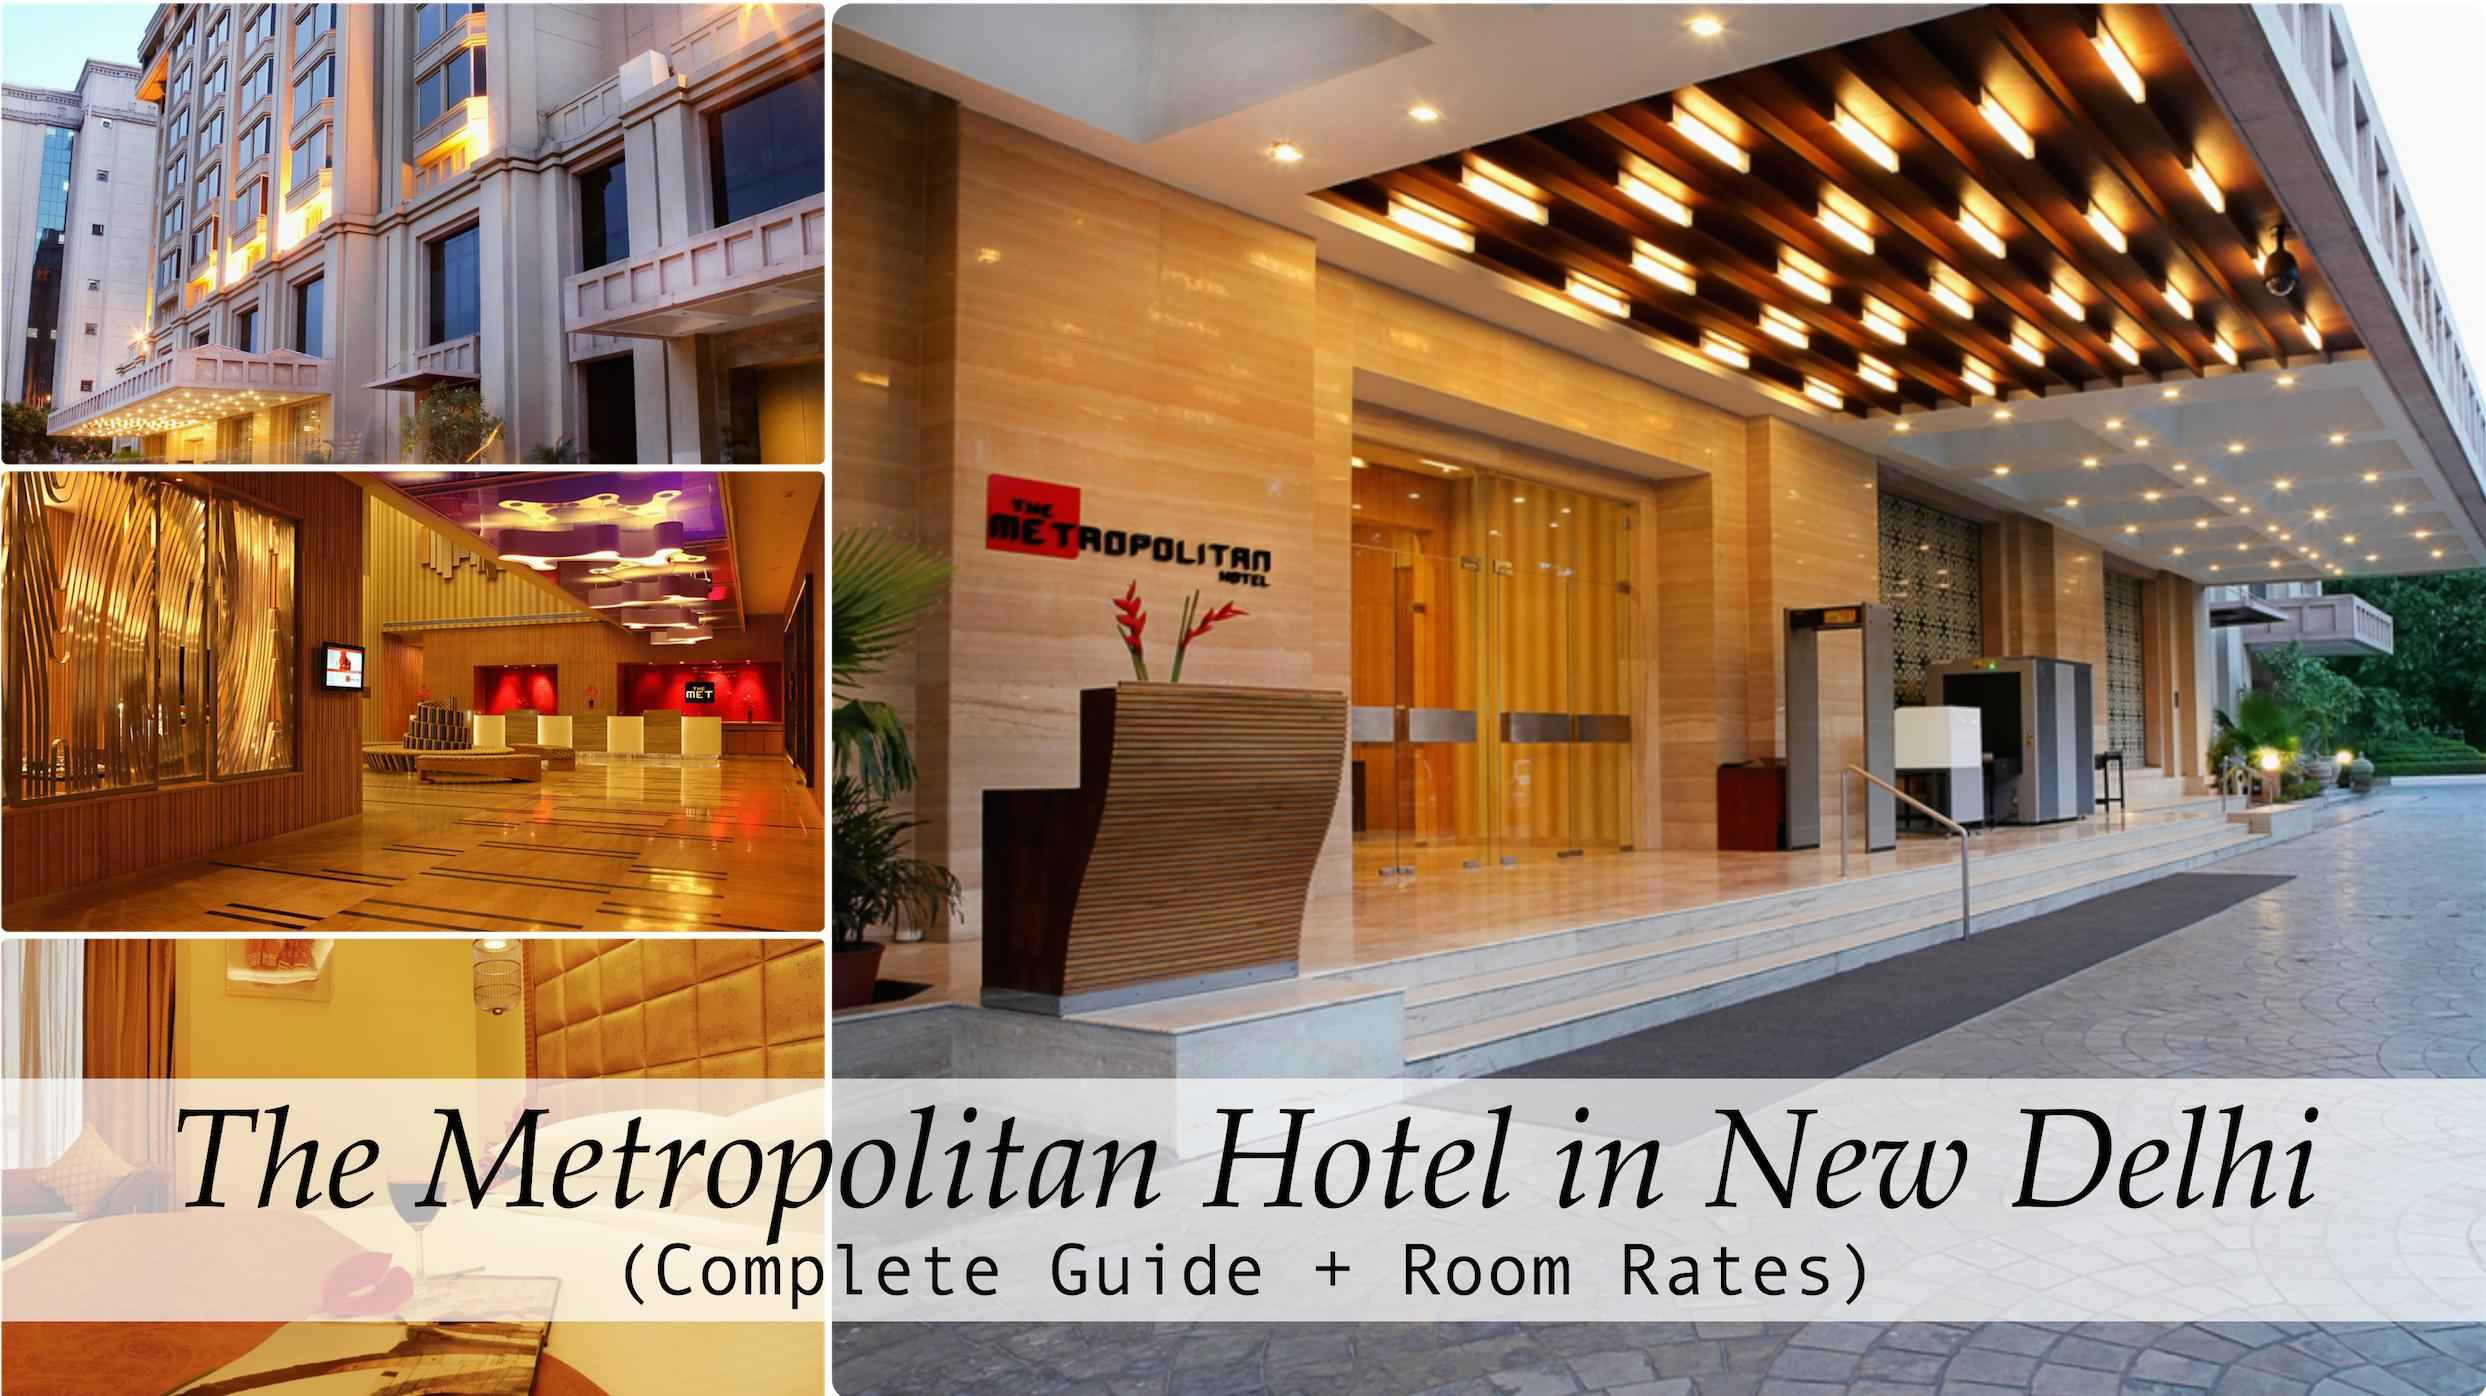 The metropolitan hotel new delhi.